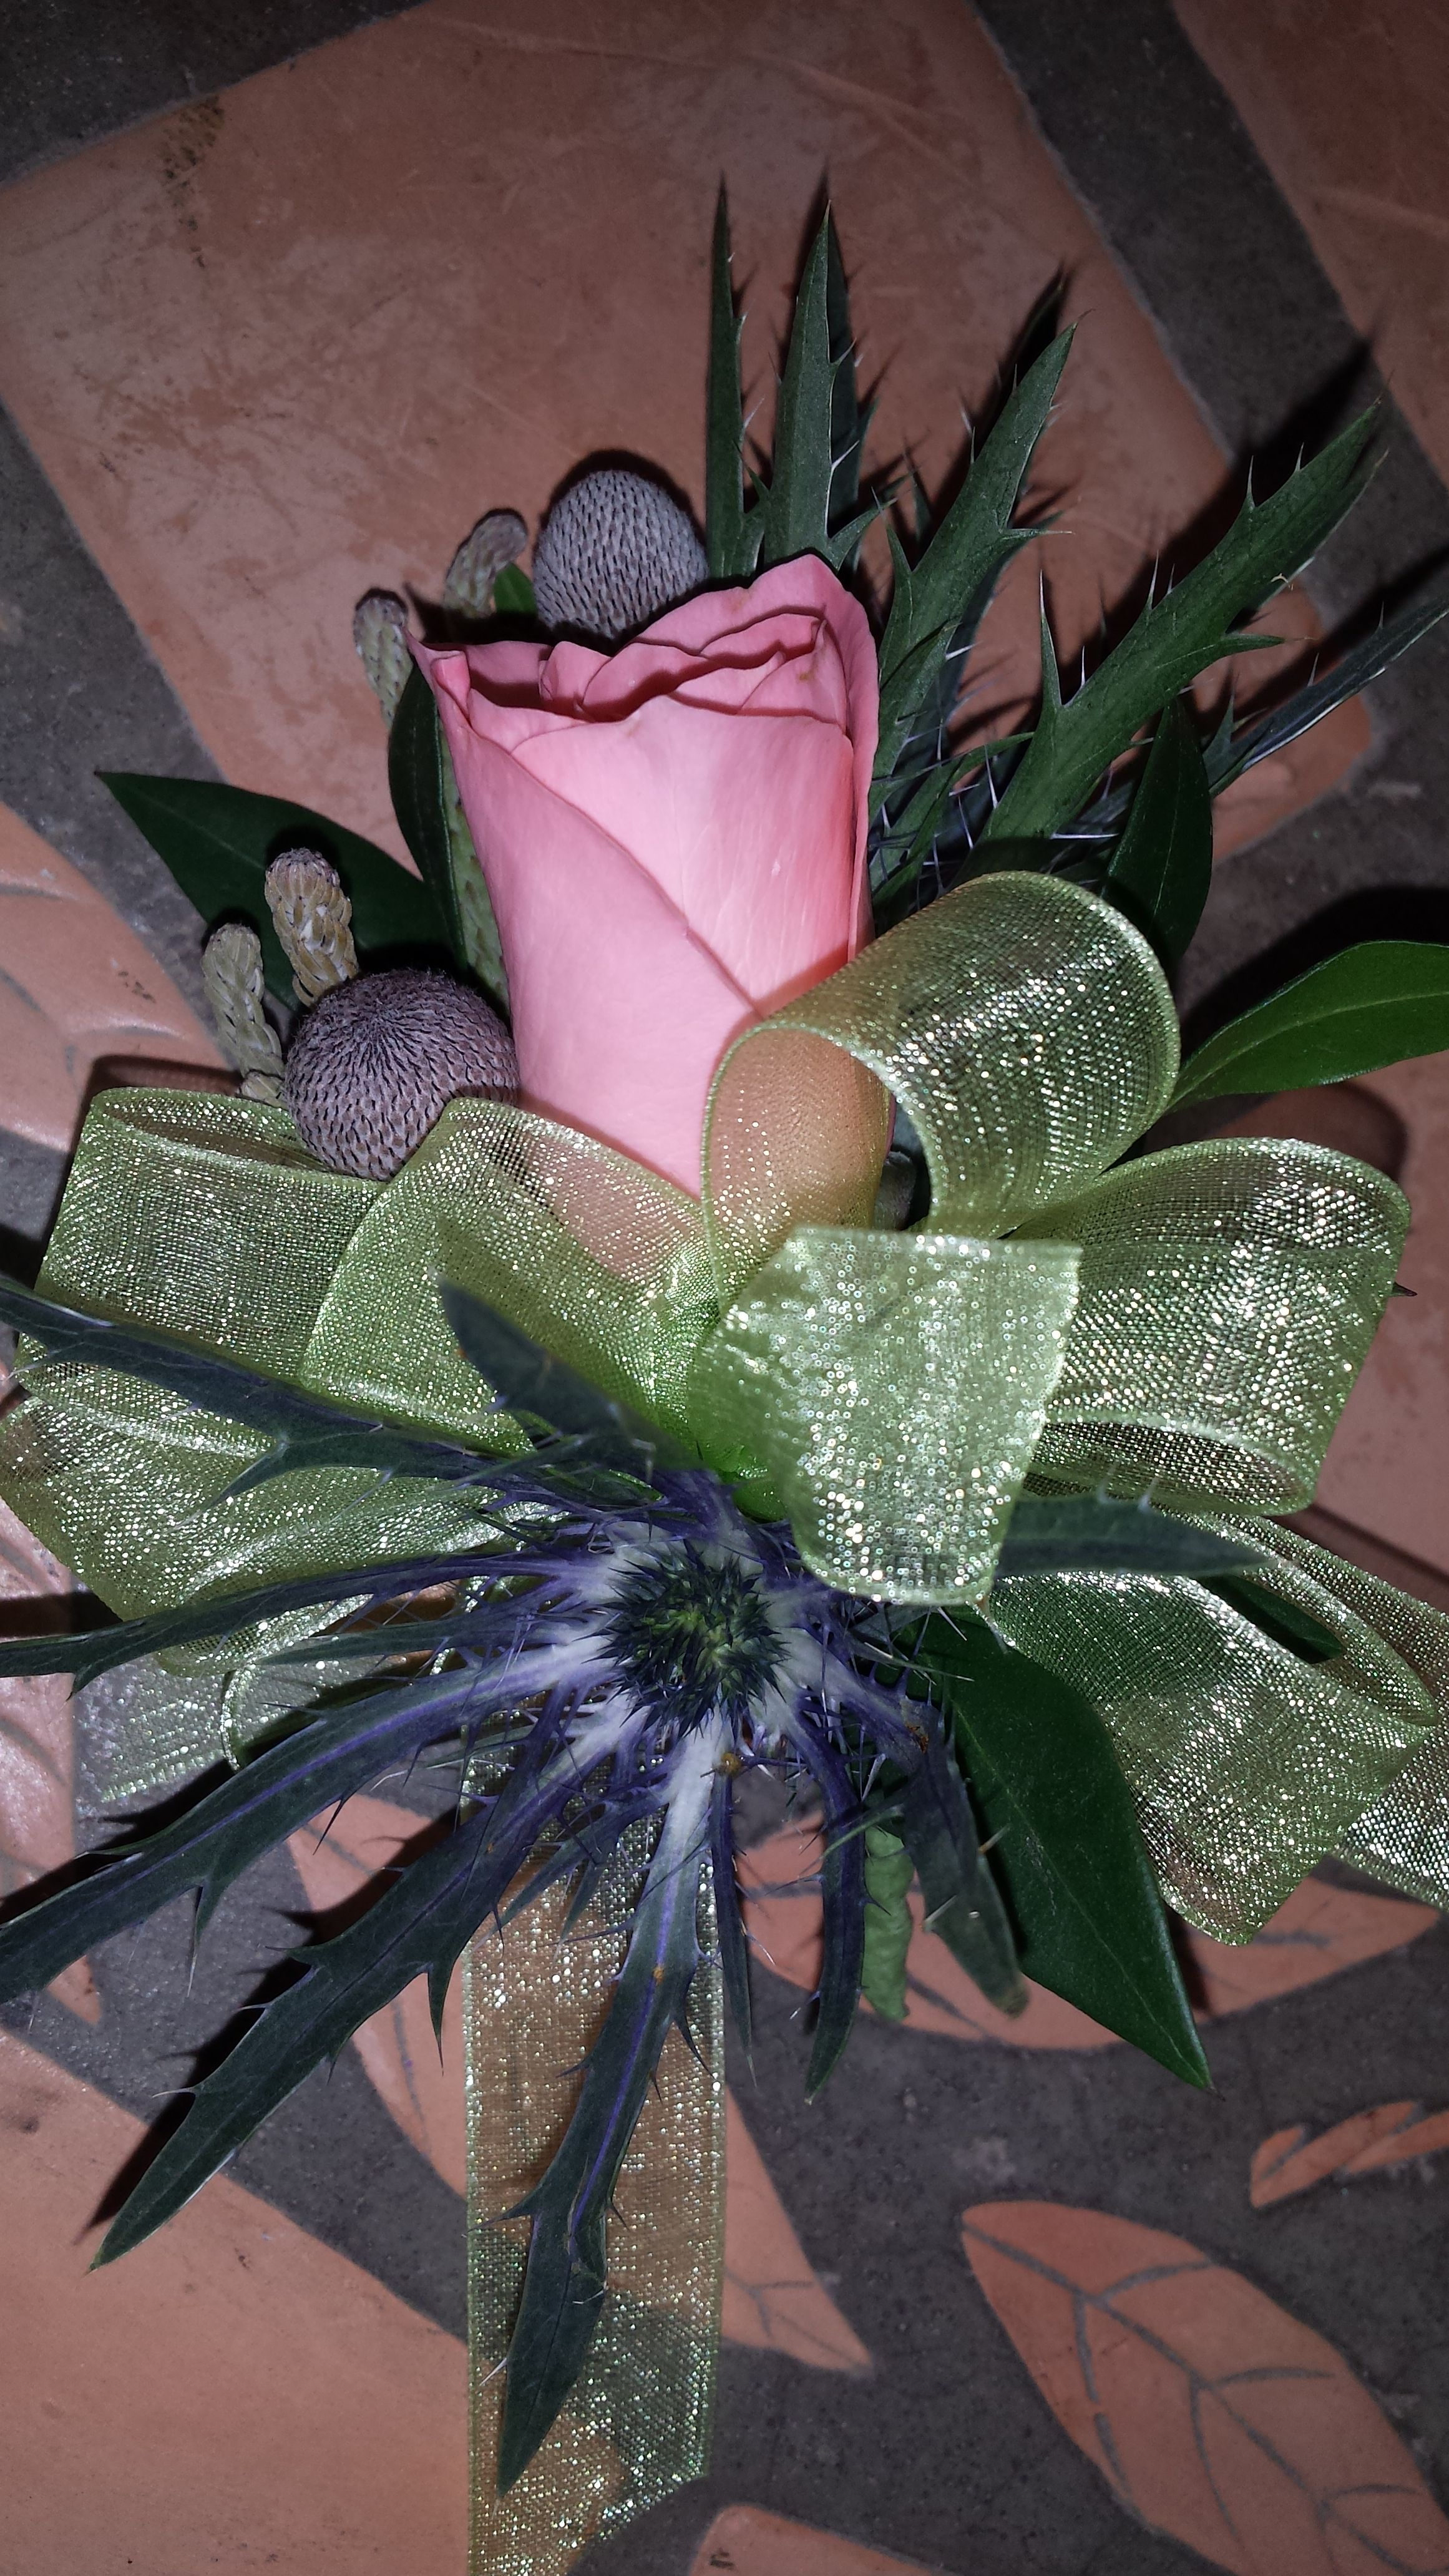 Corsage thistle silver brunea and peach spray rose